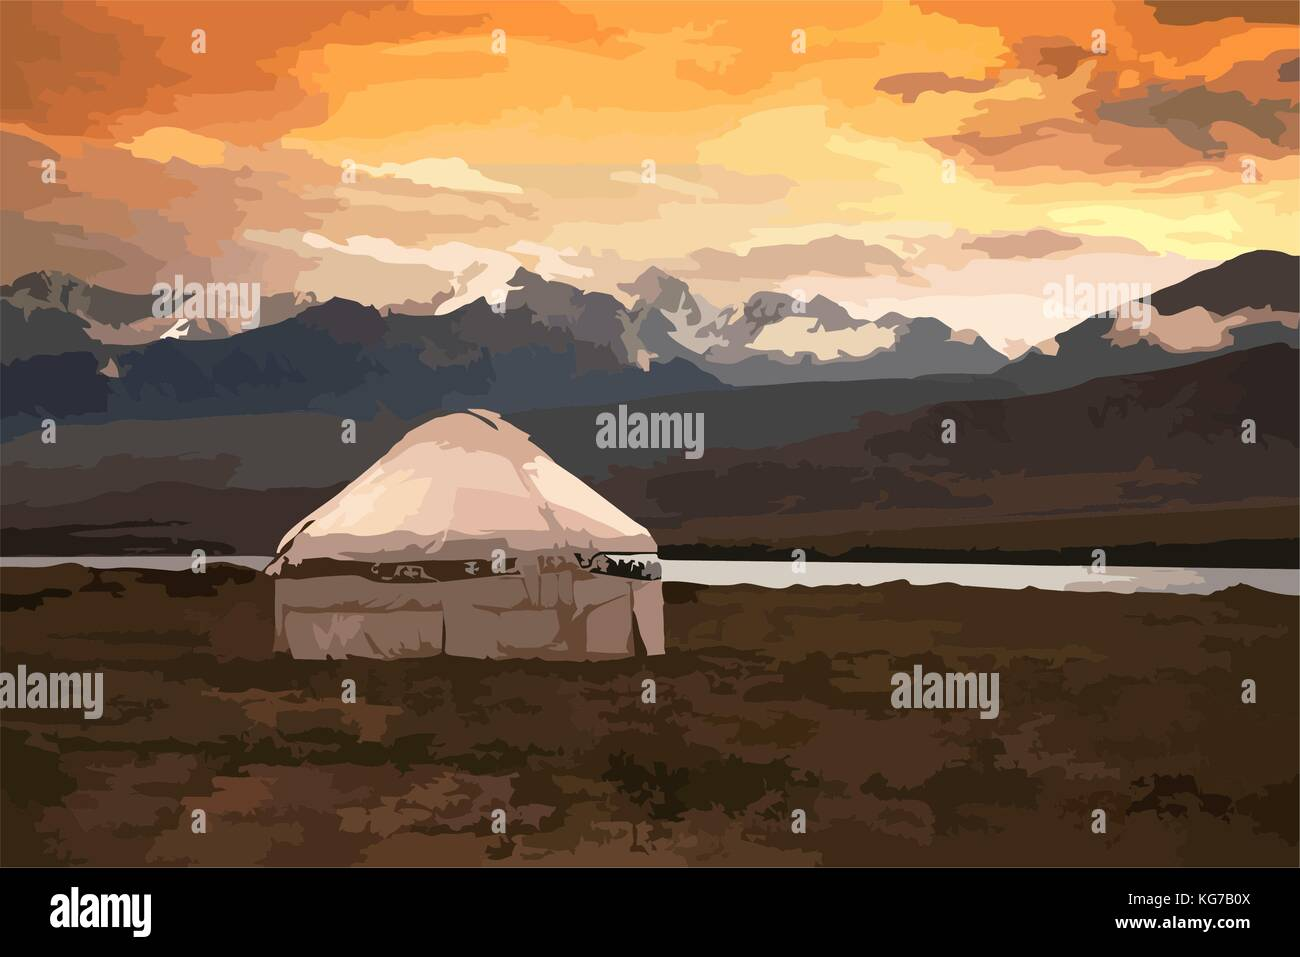 View of Mongolia. Yurts traditional Mongolian dwellings in Mongolian steppe. Mountains on background. Travel sketch. - Stock Vector